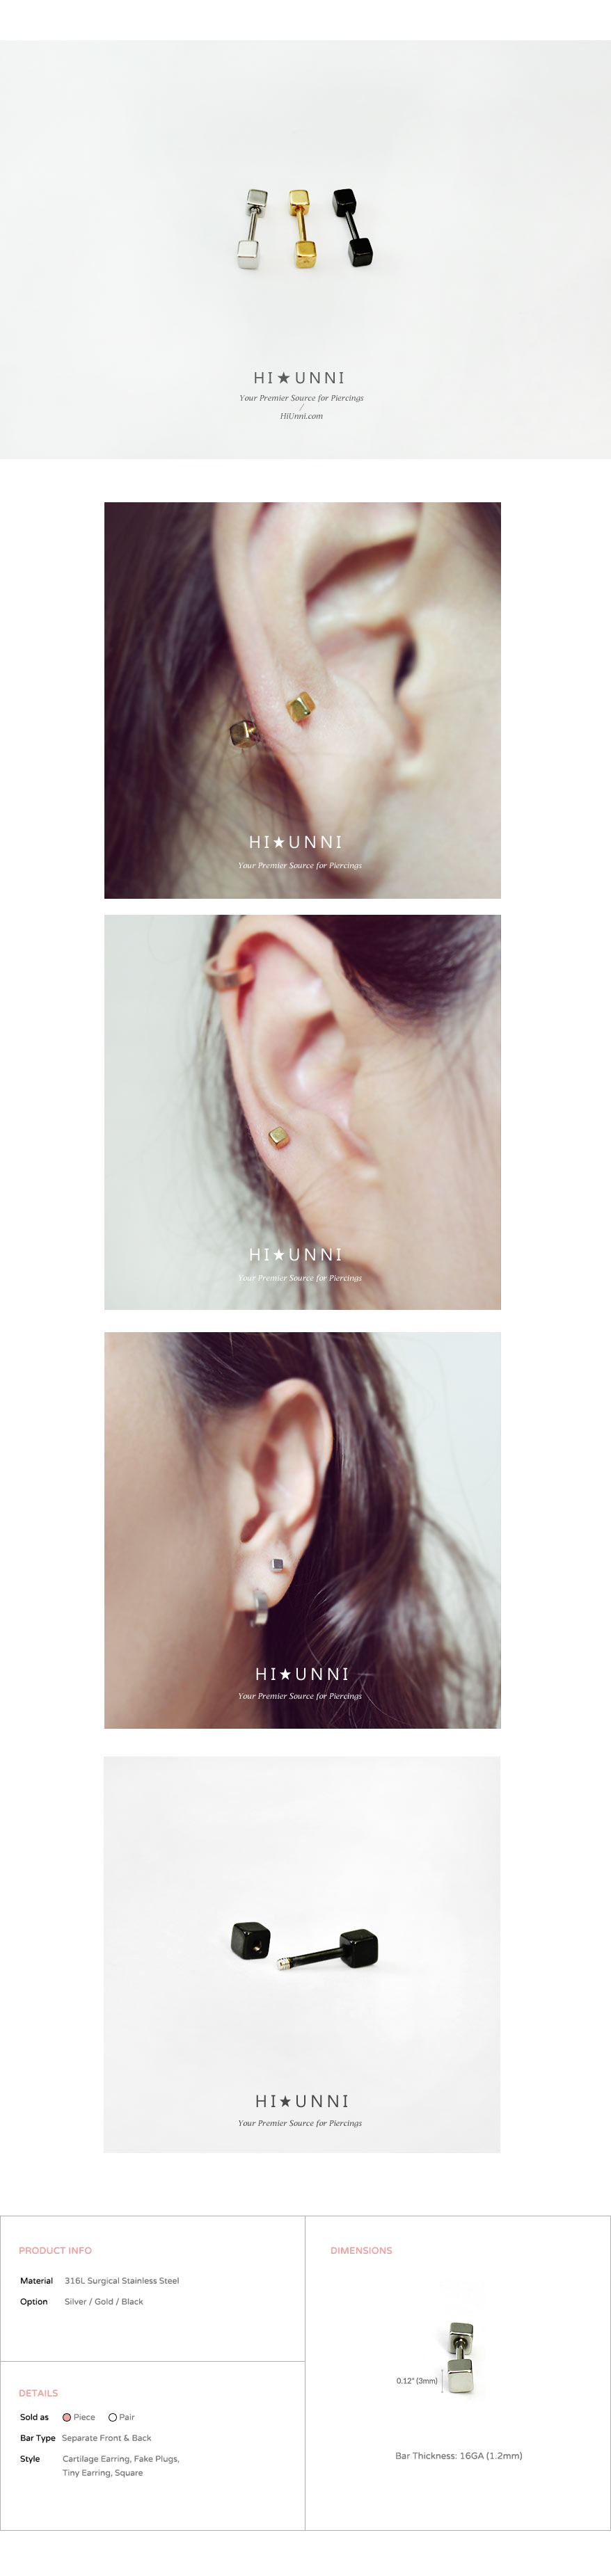 accessories_316l_ear_cartilage_piercing_earrings_16__earstuds_barbell_fake_plug_Square_tragus_8